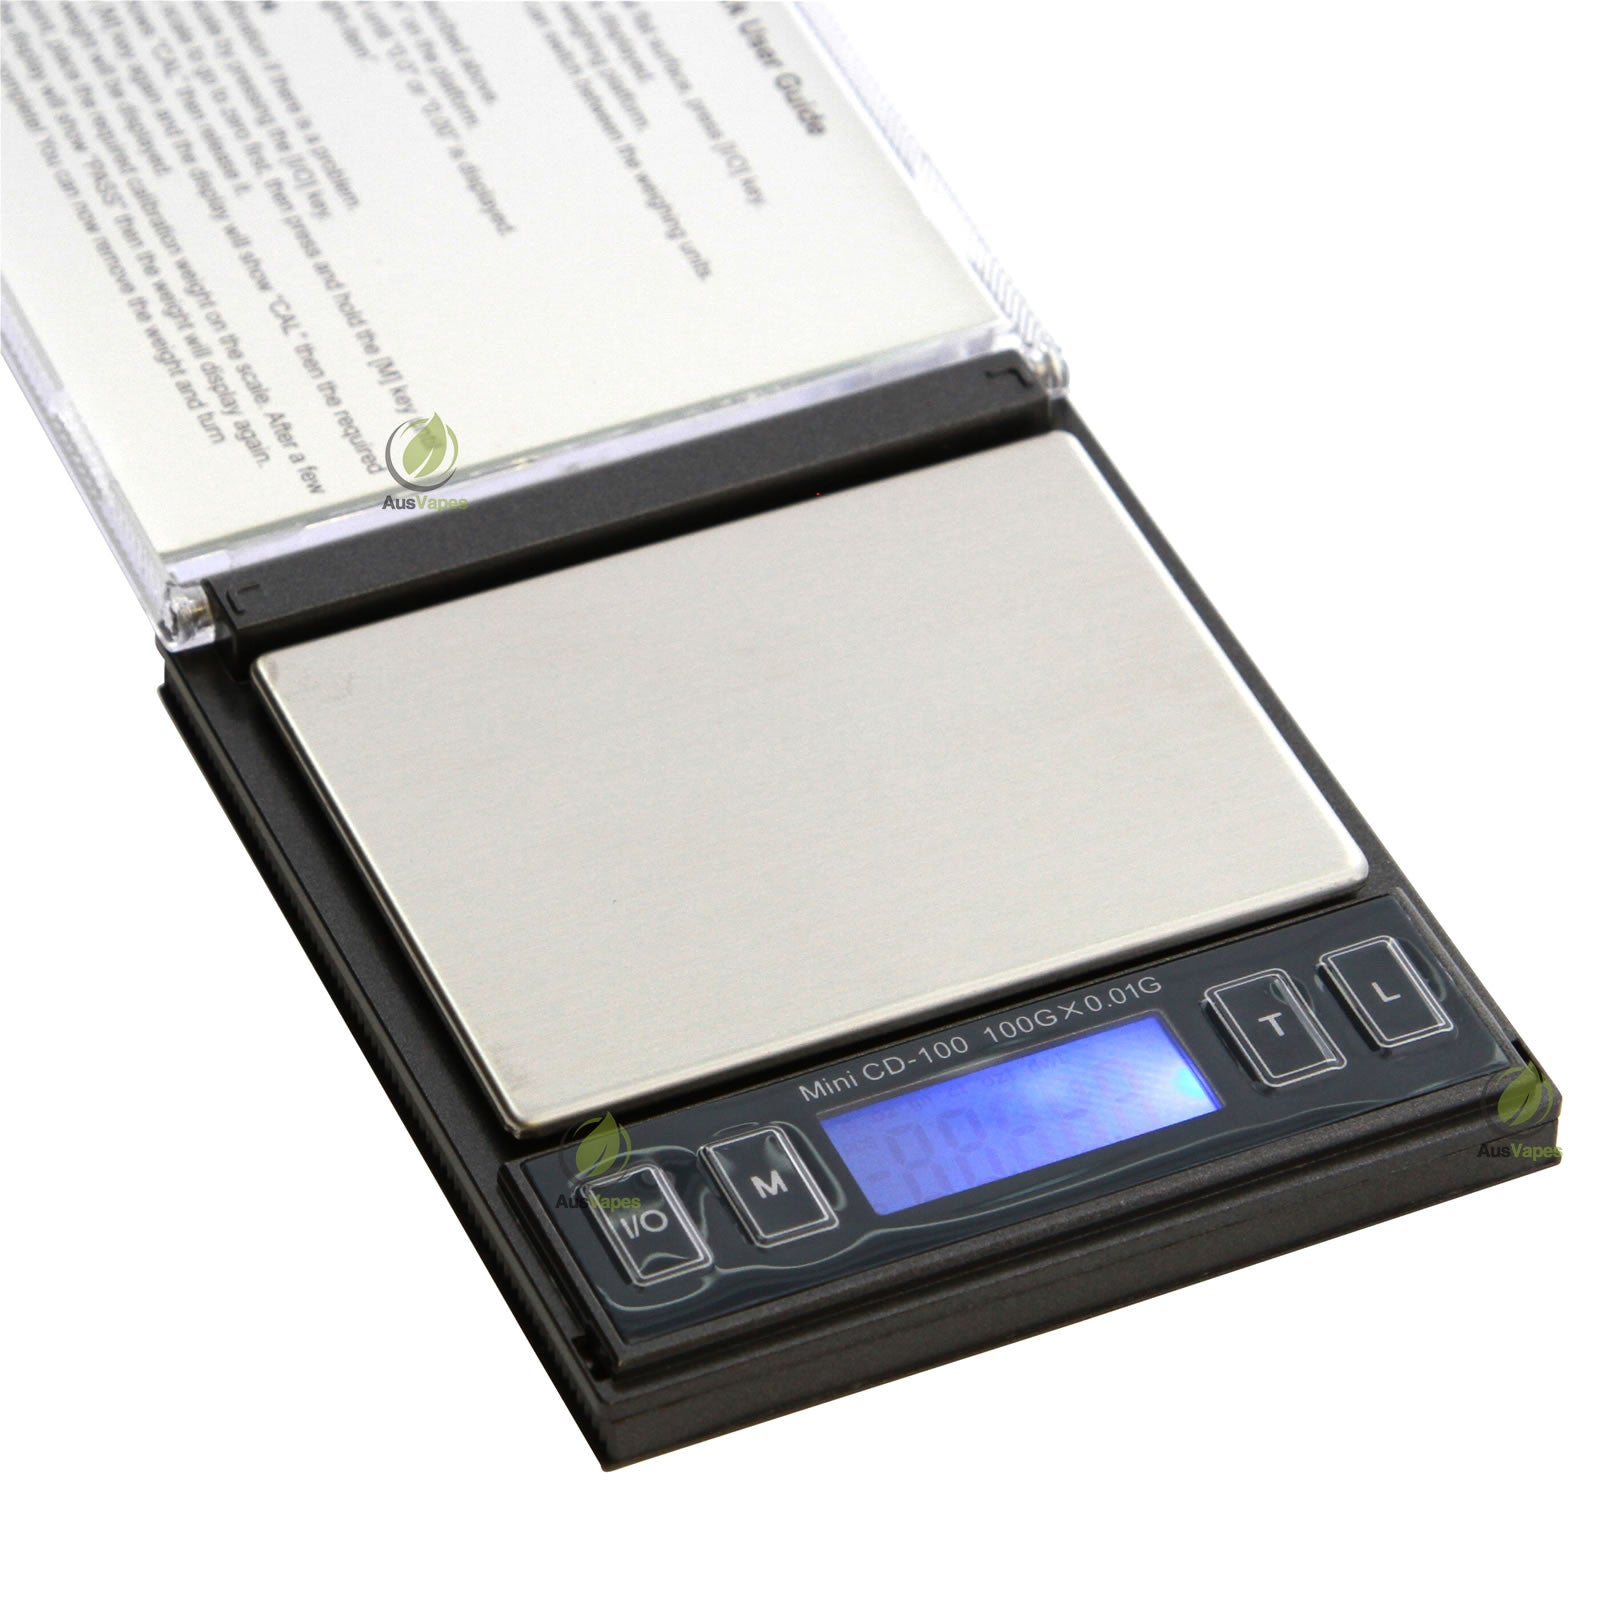 DISCONTINUED AWS Mini CD Digital Scale 100g x 0.01g